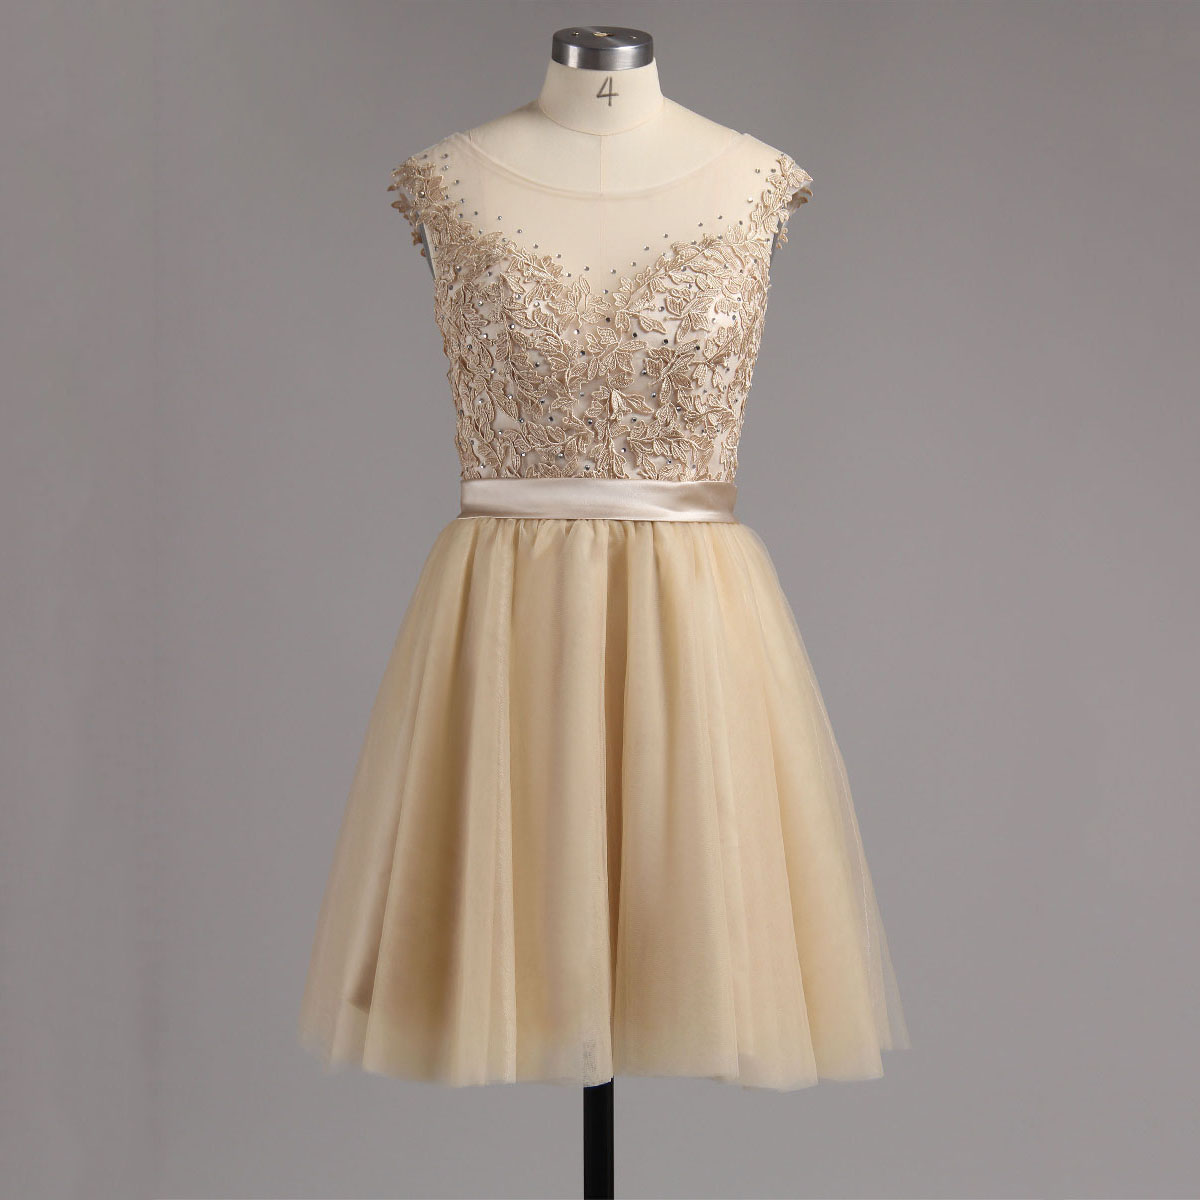 Champagne Low Back Homecoming Dress, Tulle Short Homecoming Dress with Lace Appliques, Princess Homecoming Dress with Cap Sleeves, #02016005